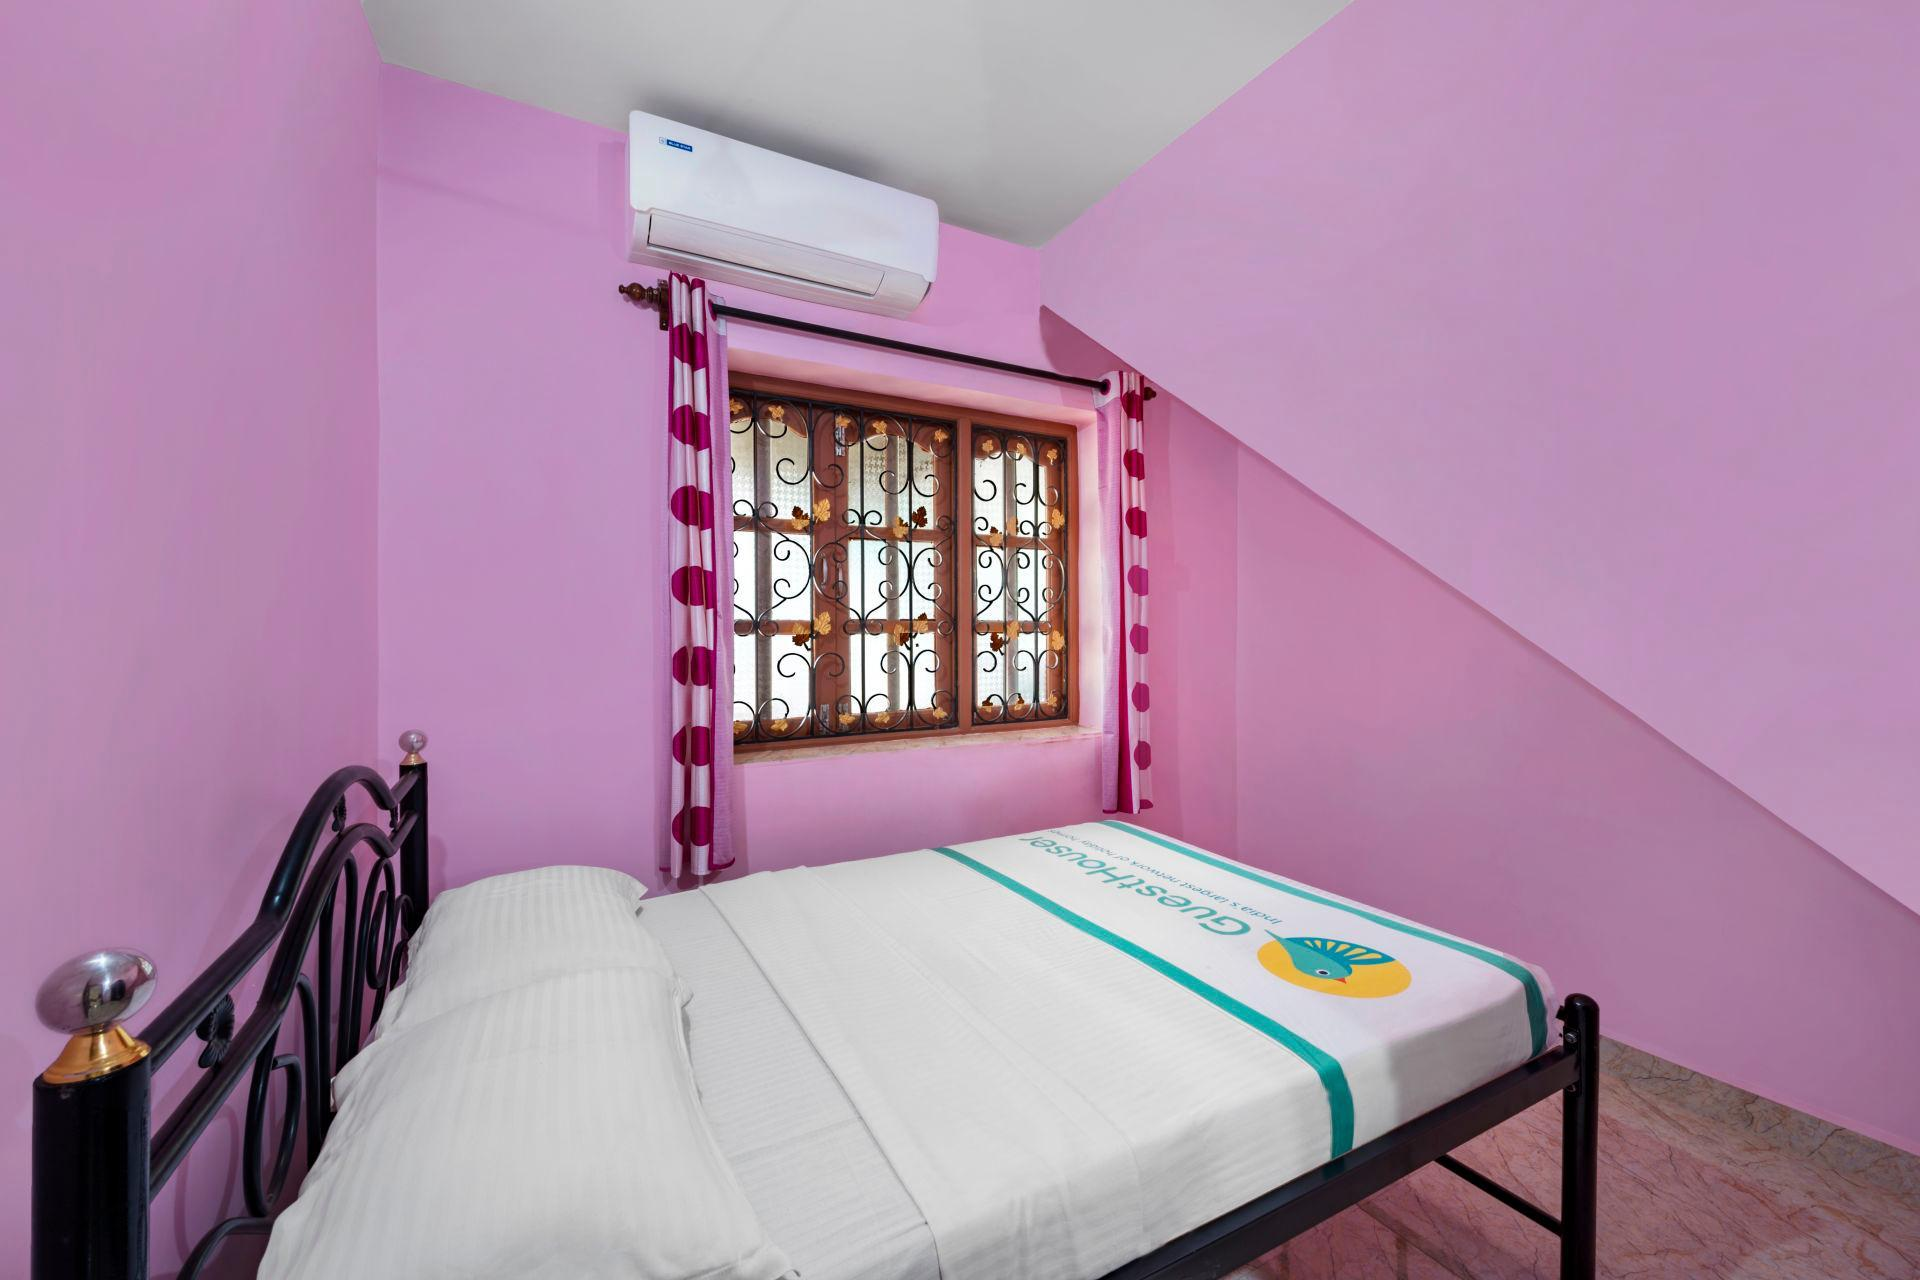 Homely 2 BHK For 6